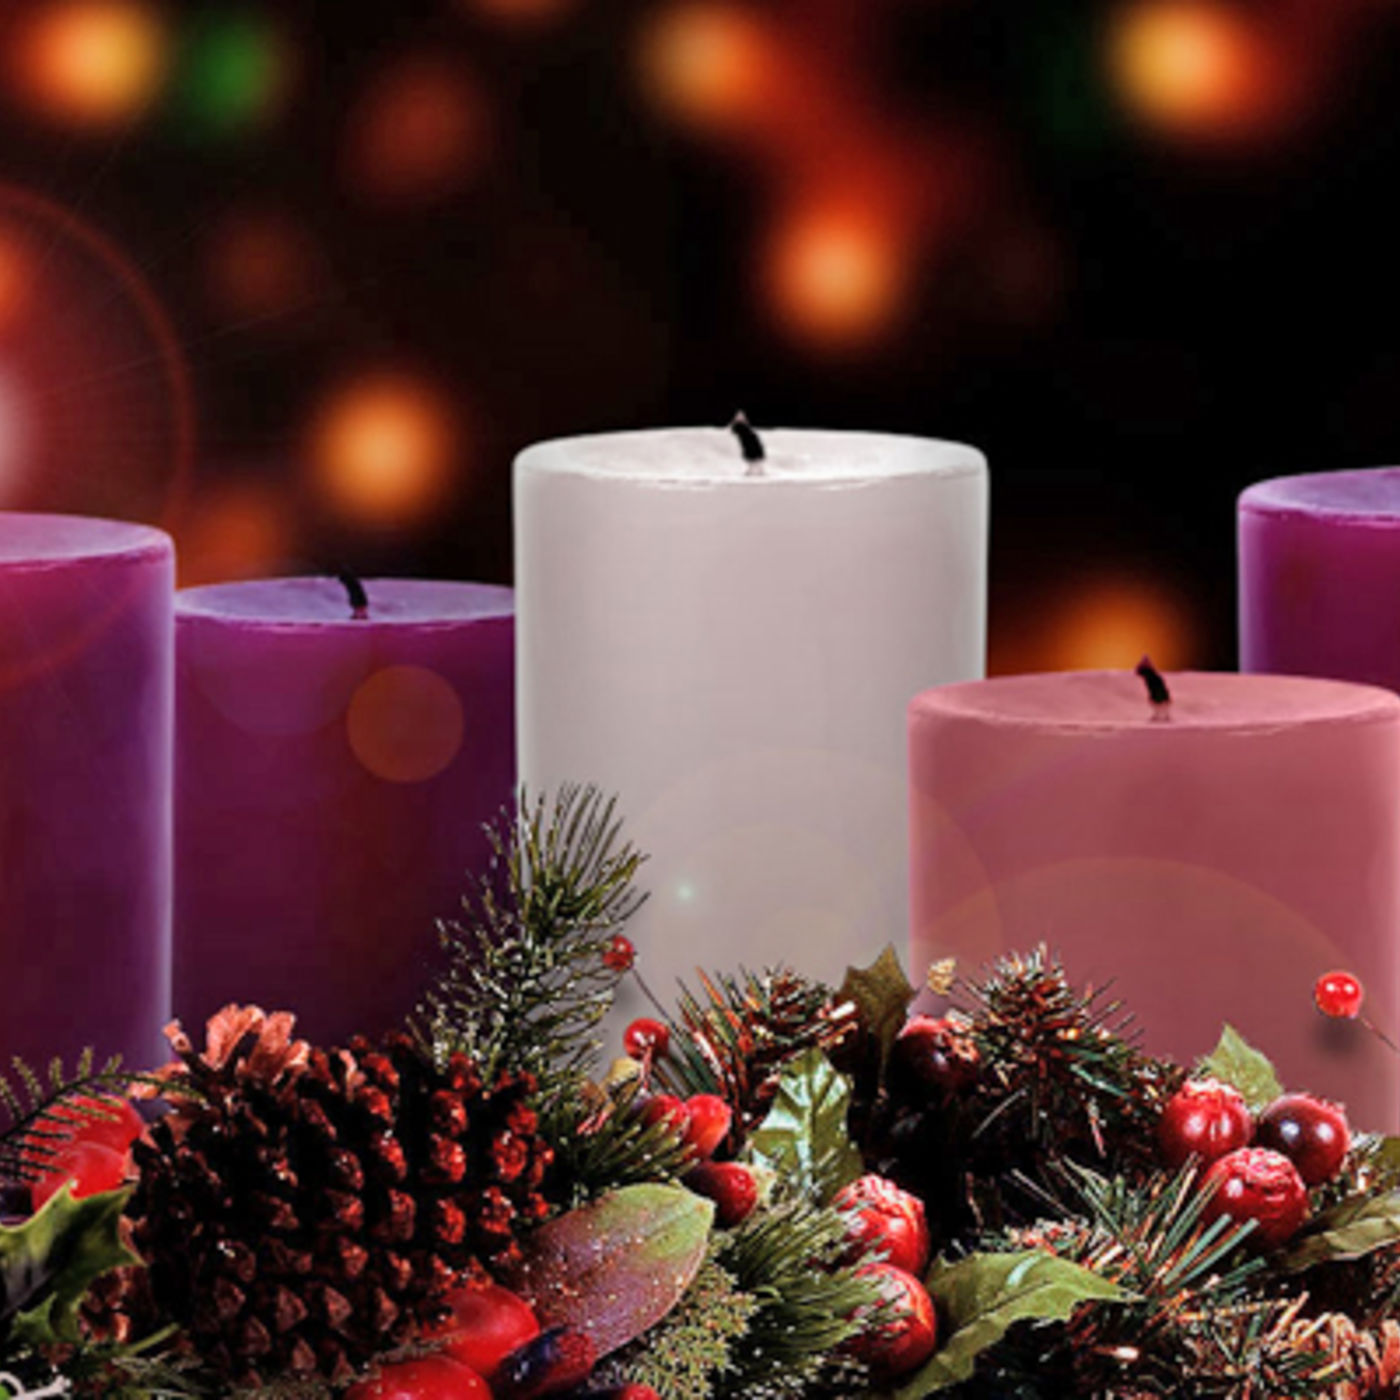 Evening Service 2nd December 2018, Pause for Advent